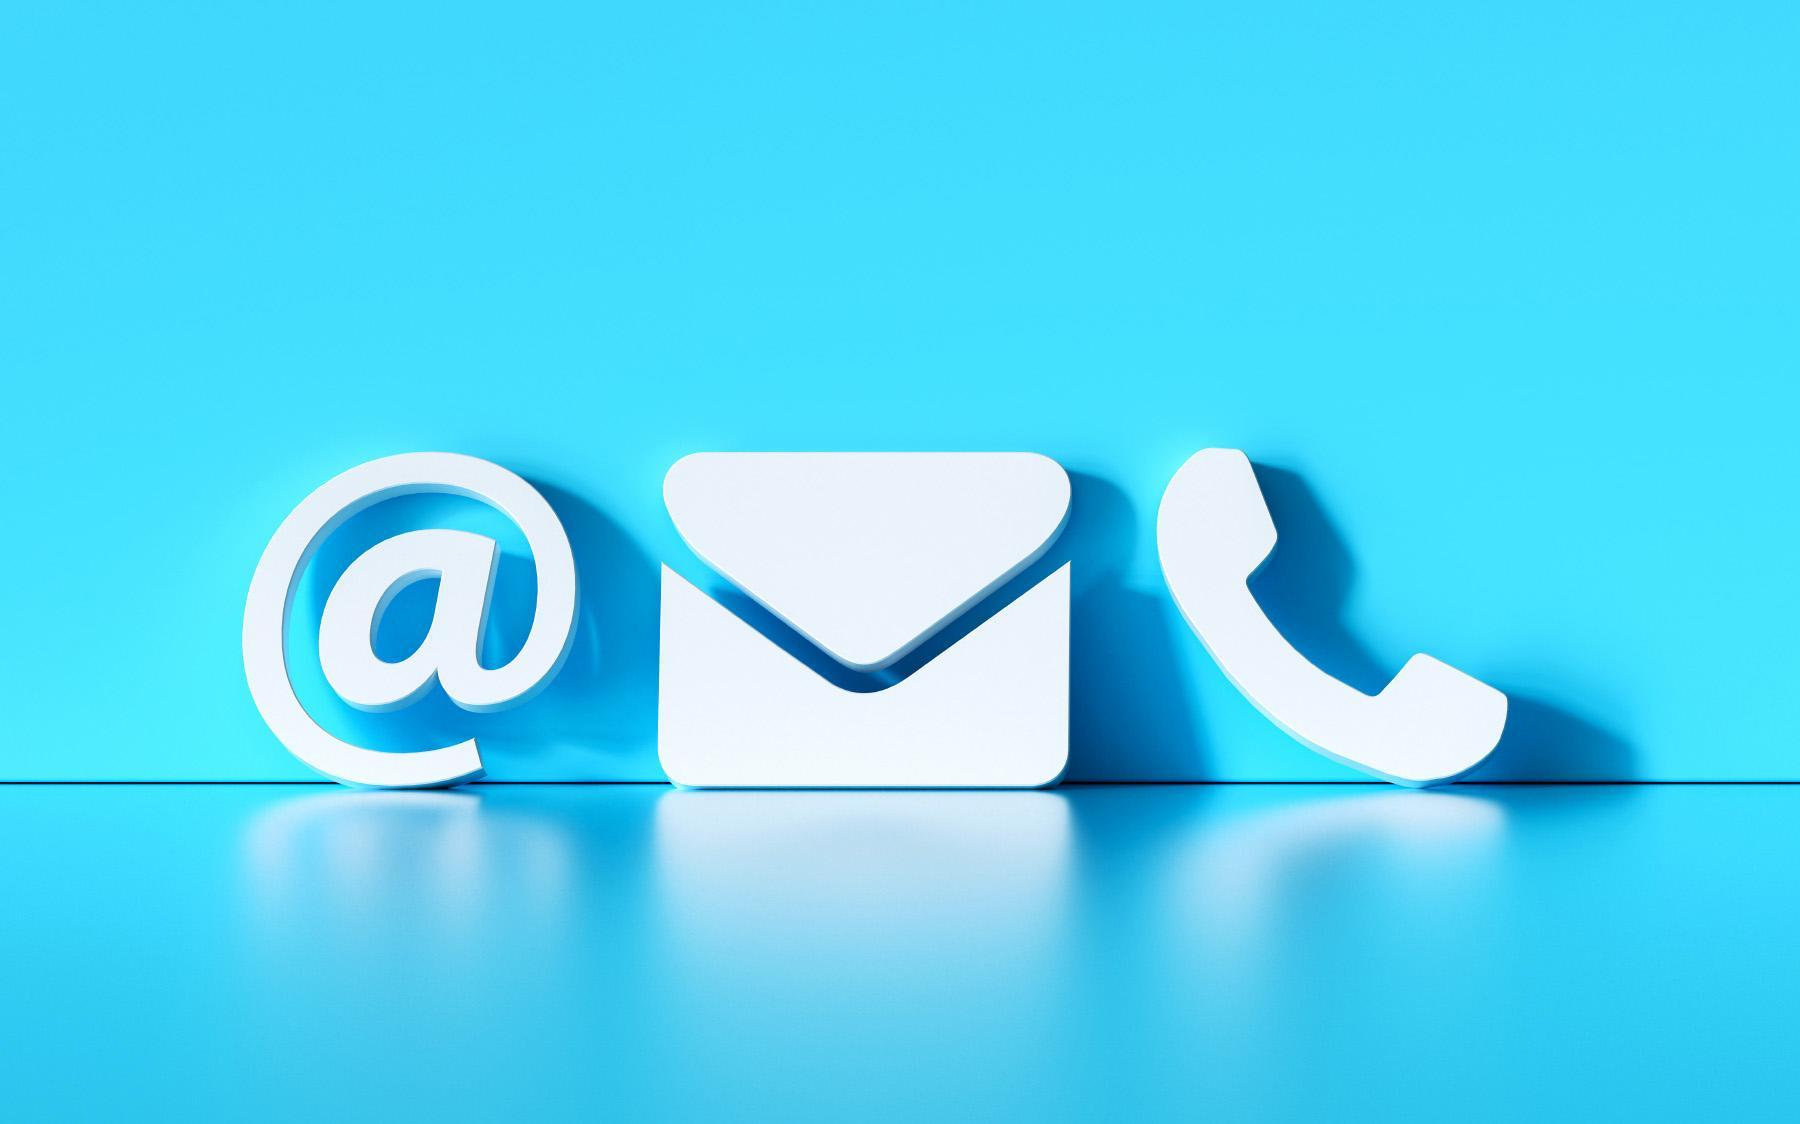 Email, mail, and phone icons set against a blue background